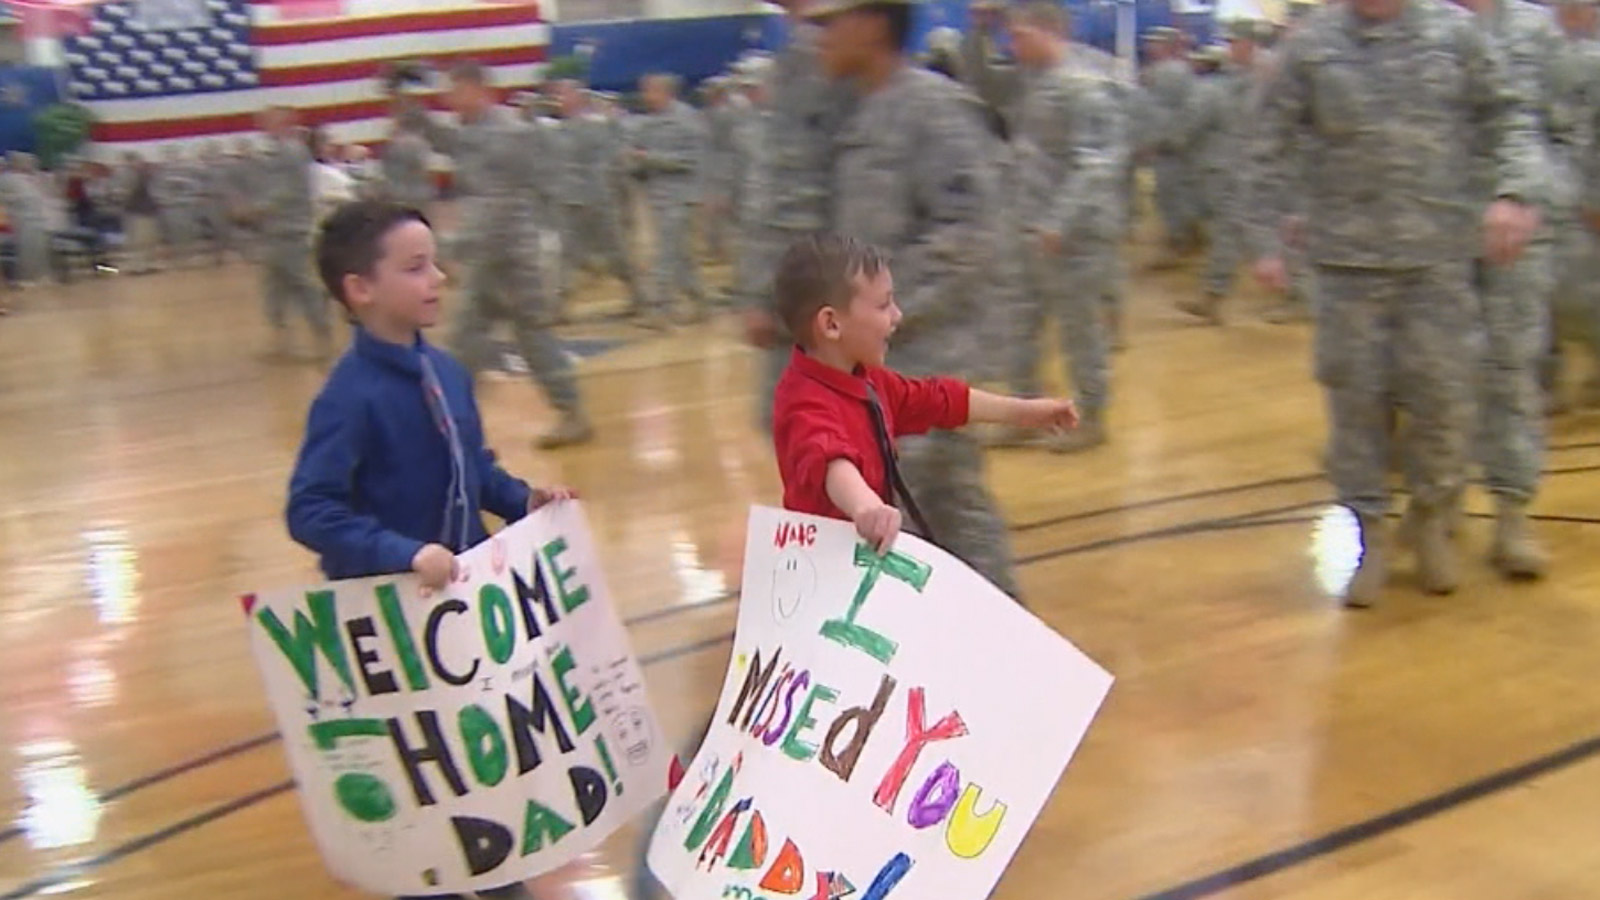 Children of a Fort Carson soldier run to greet him at a homecoming ceremony on Thursday (credit: CBS)